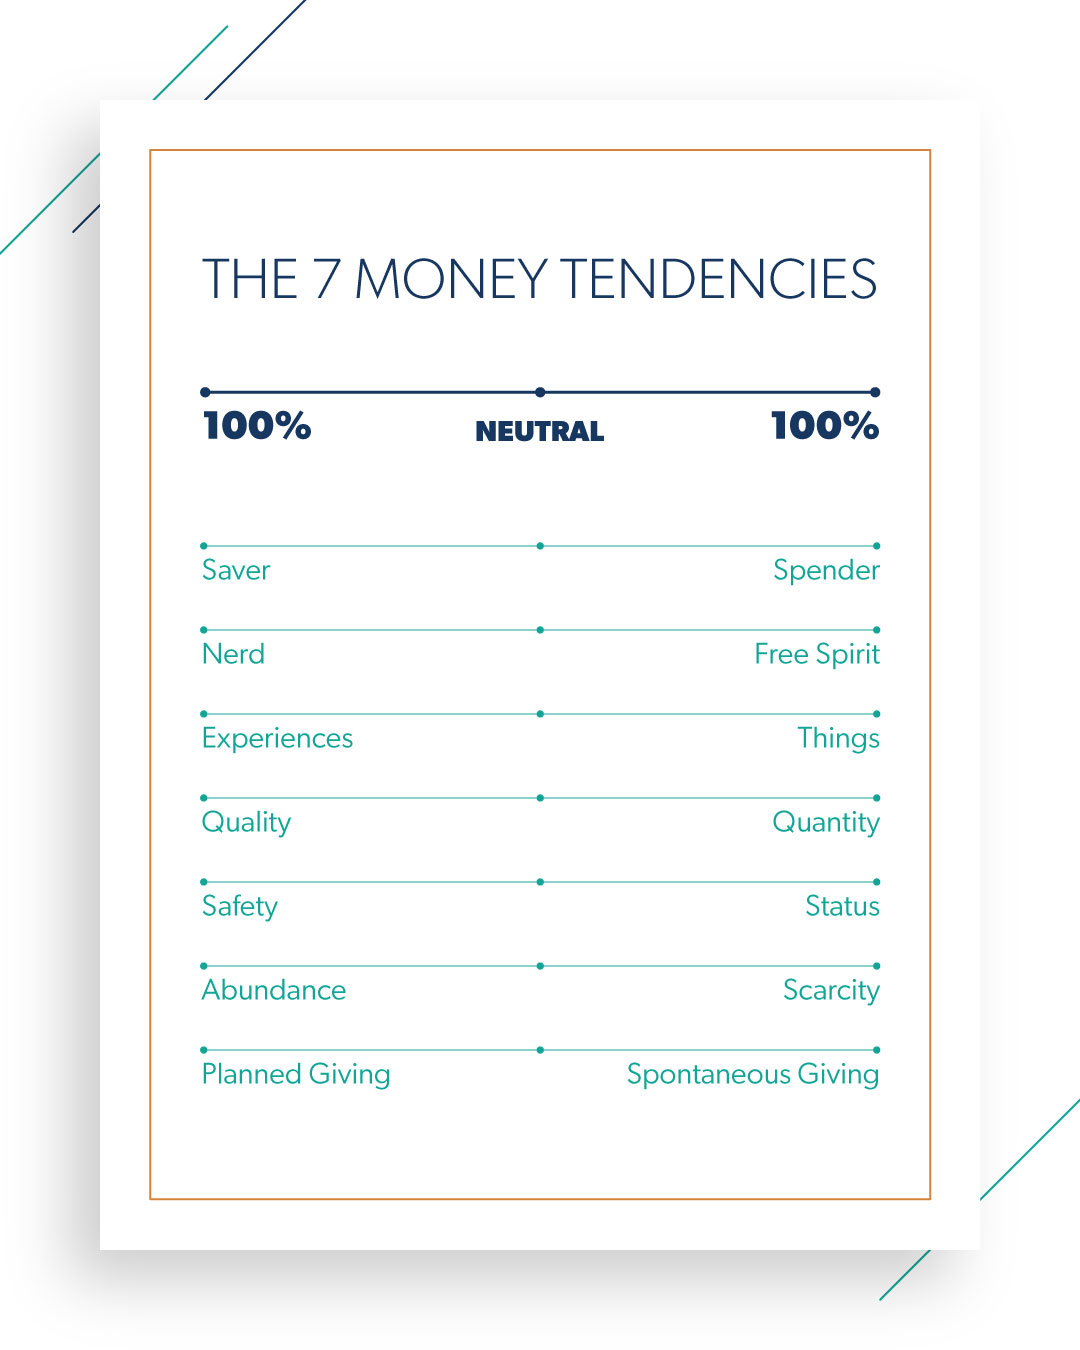 The SevenMoney Tendencies: Spender orSaver; Nerd orFree Spirit; Experiences orThings; Quality orQuantity; Safety orStatus; Abundance orScarcity; Planned Giving orSpontaneous Giving